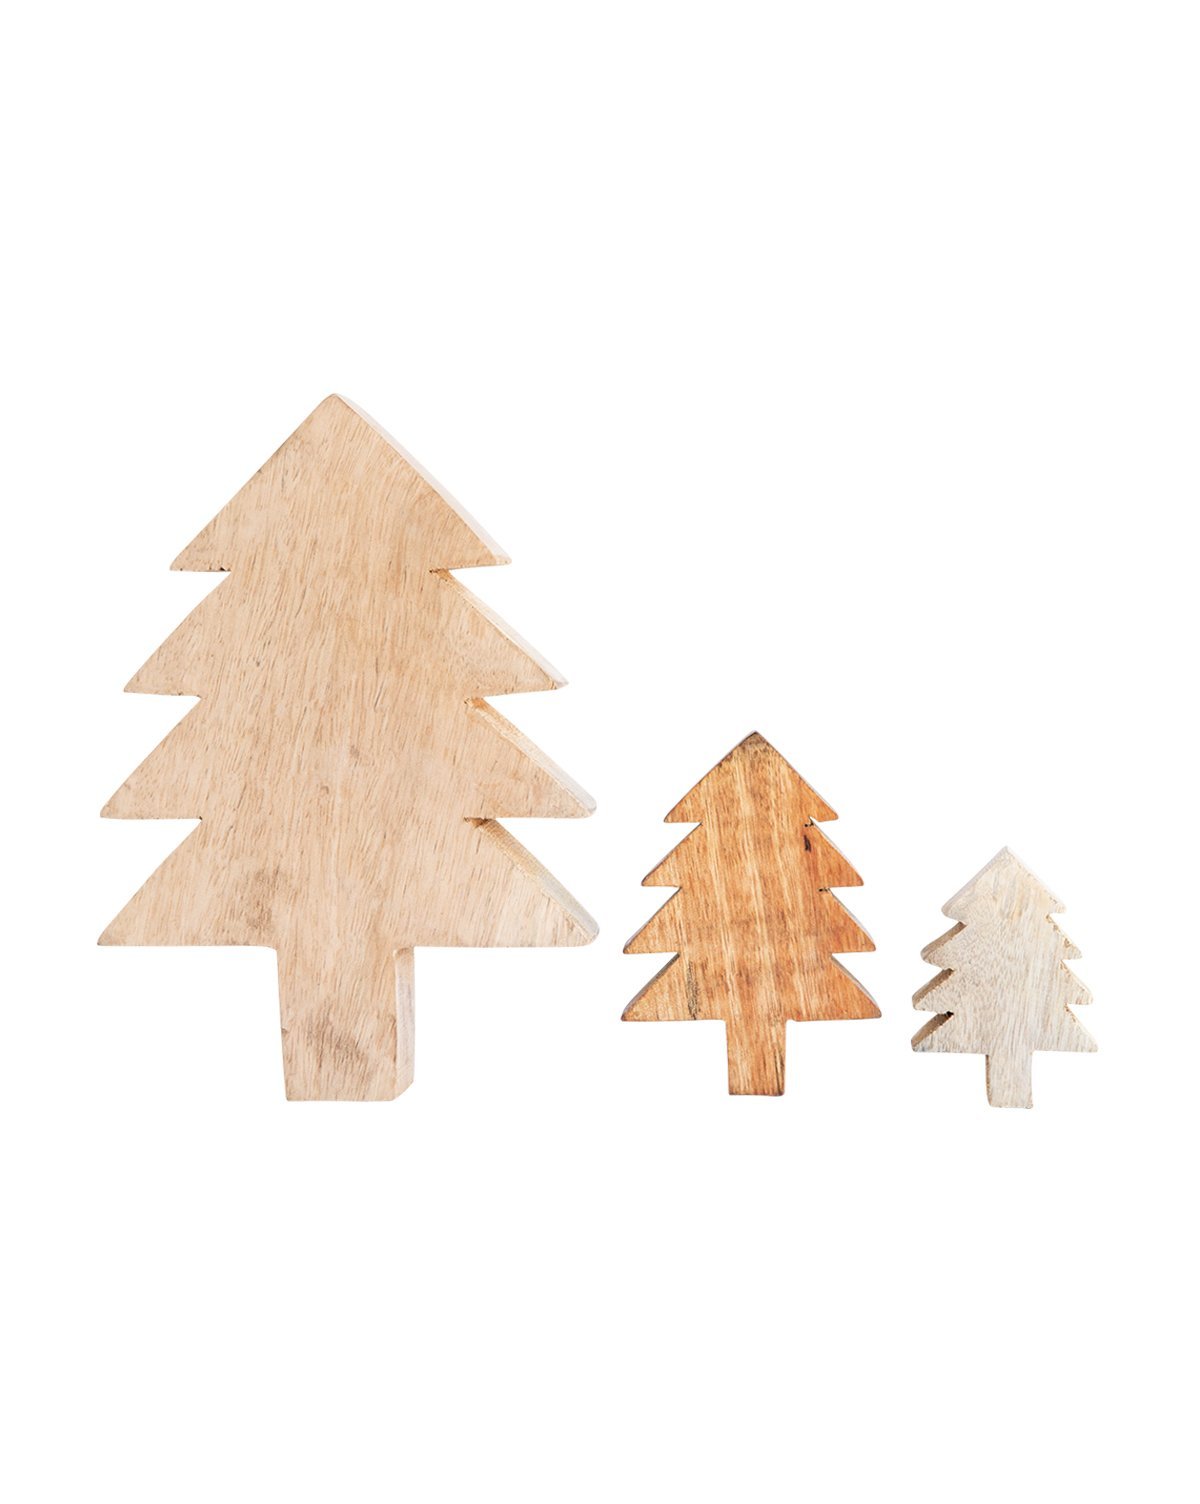 Wooden_Holiday_Tree_Object_1.jpg